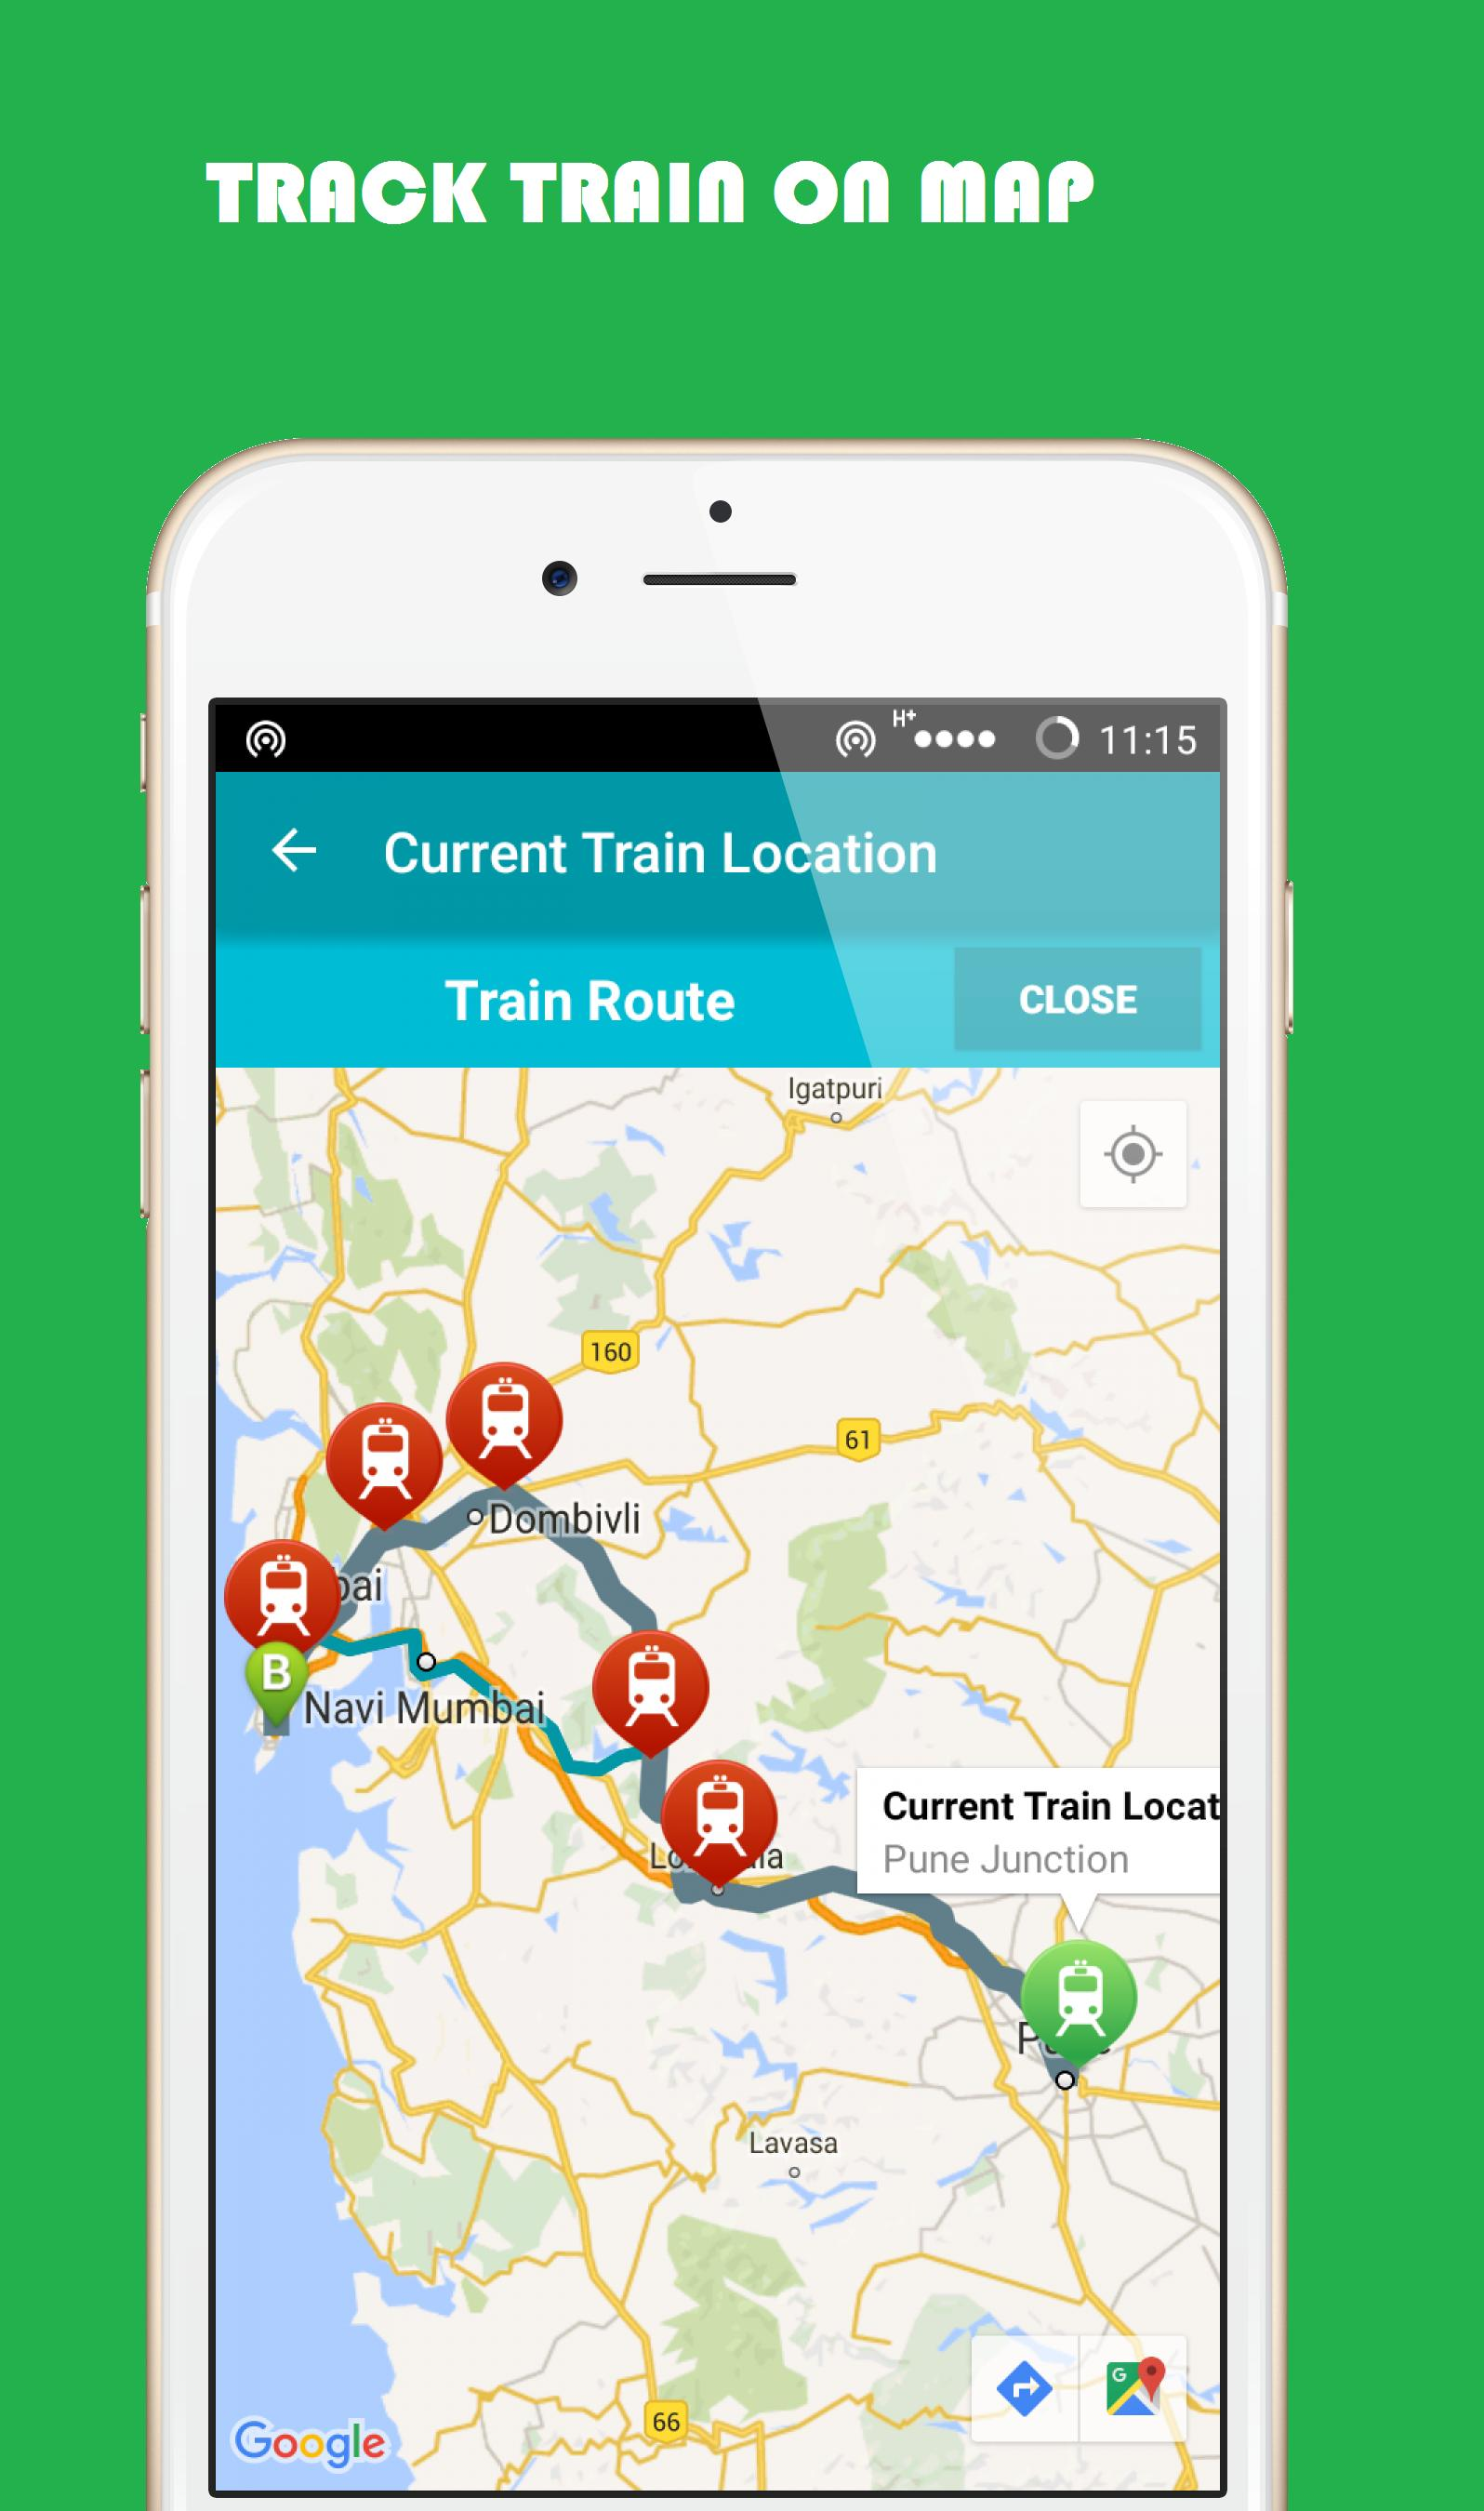 Track Live Train Map for Android - APK Download